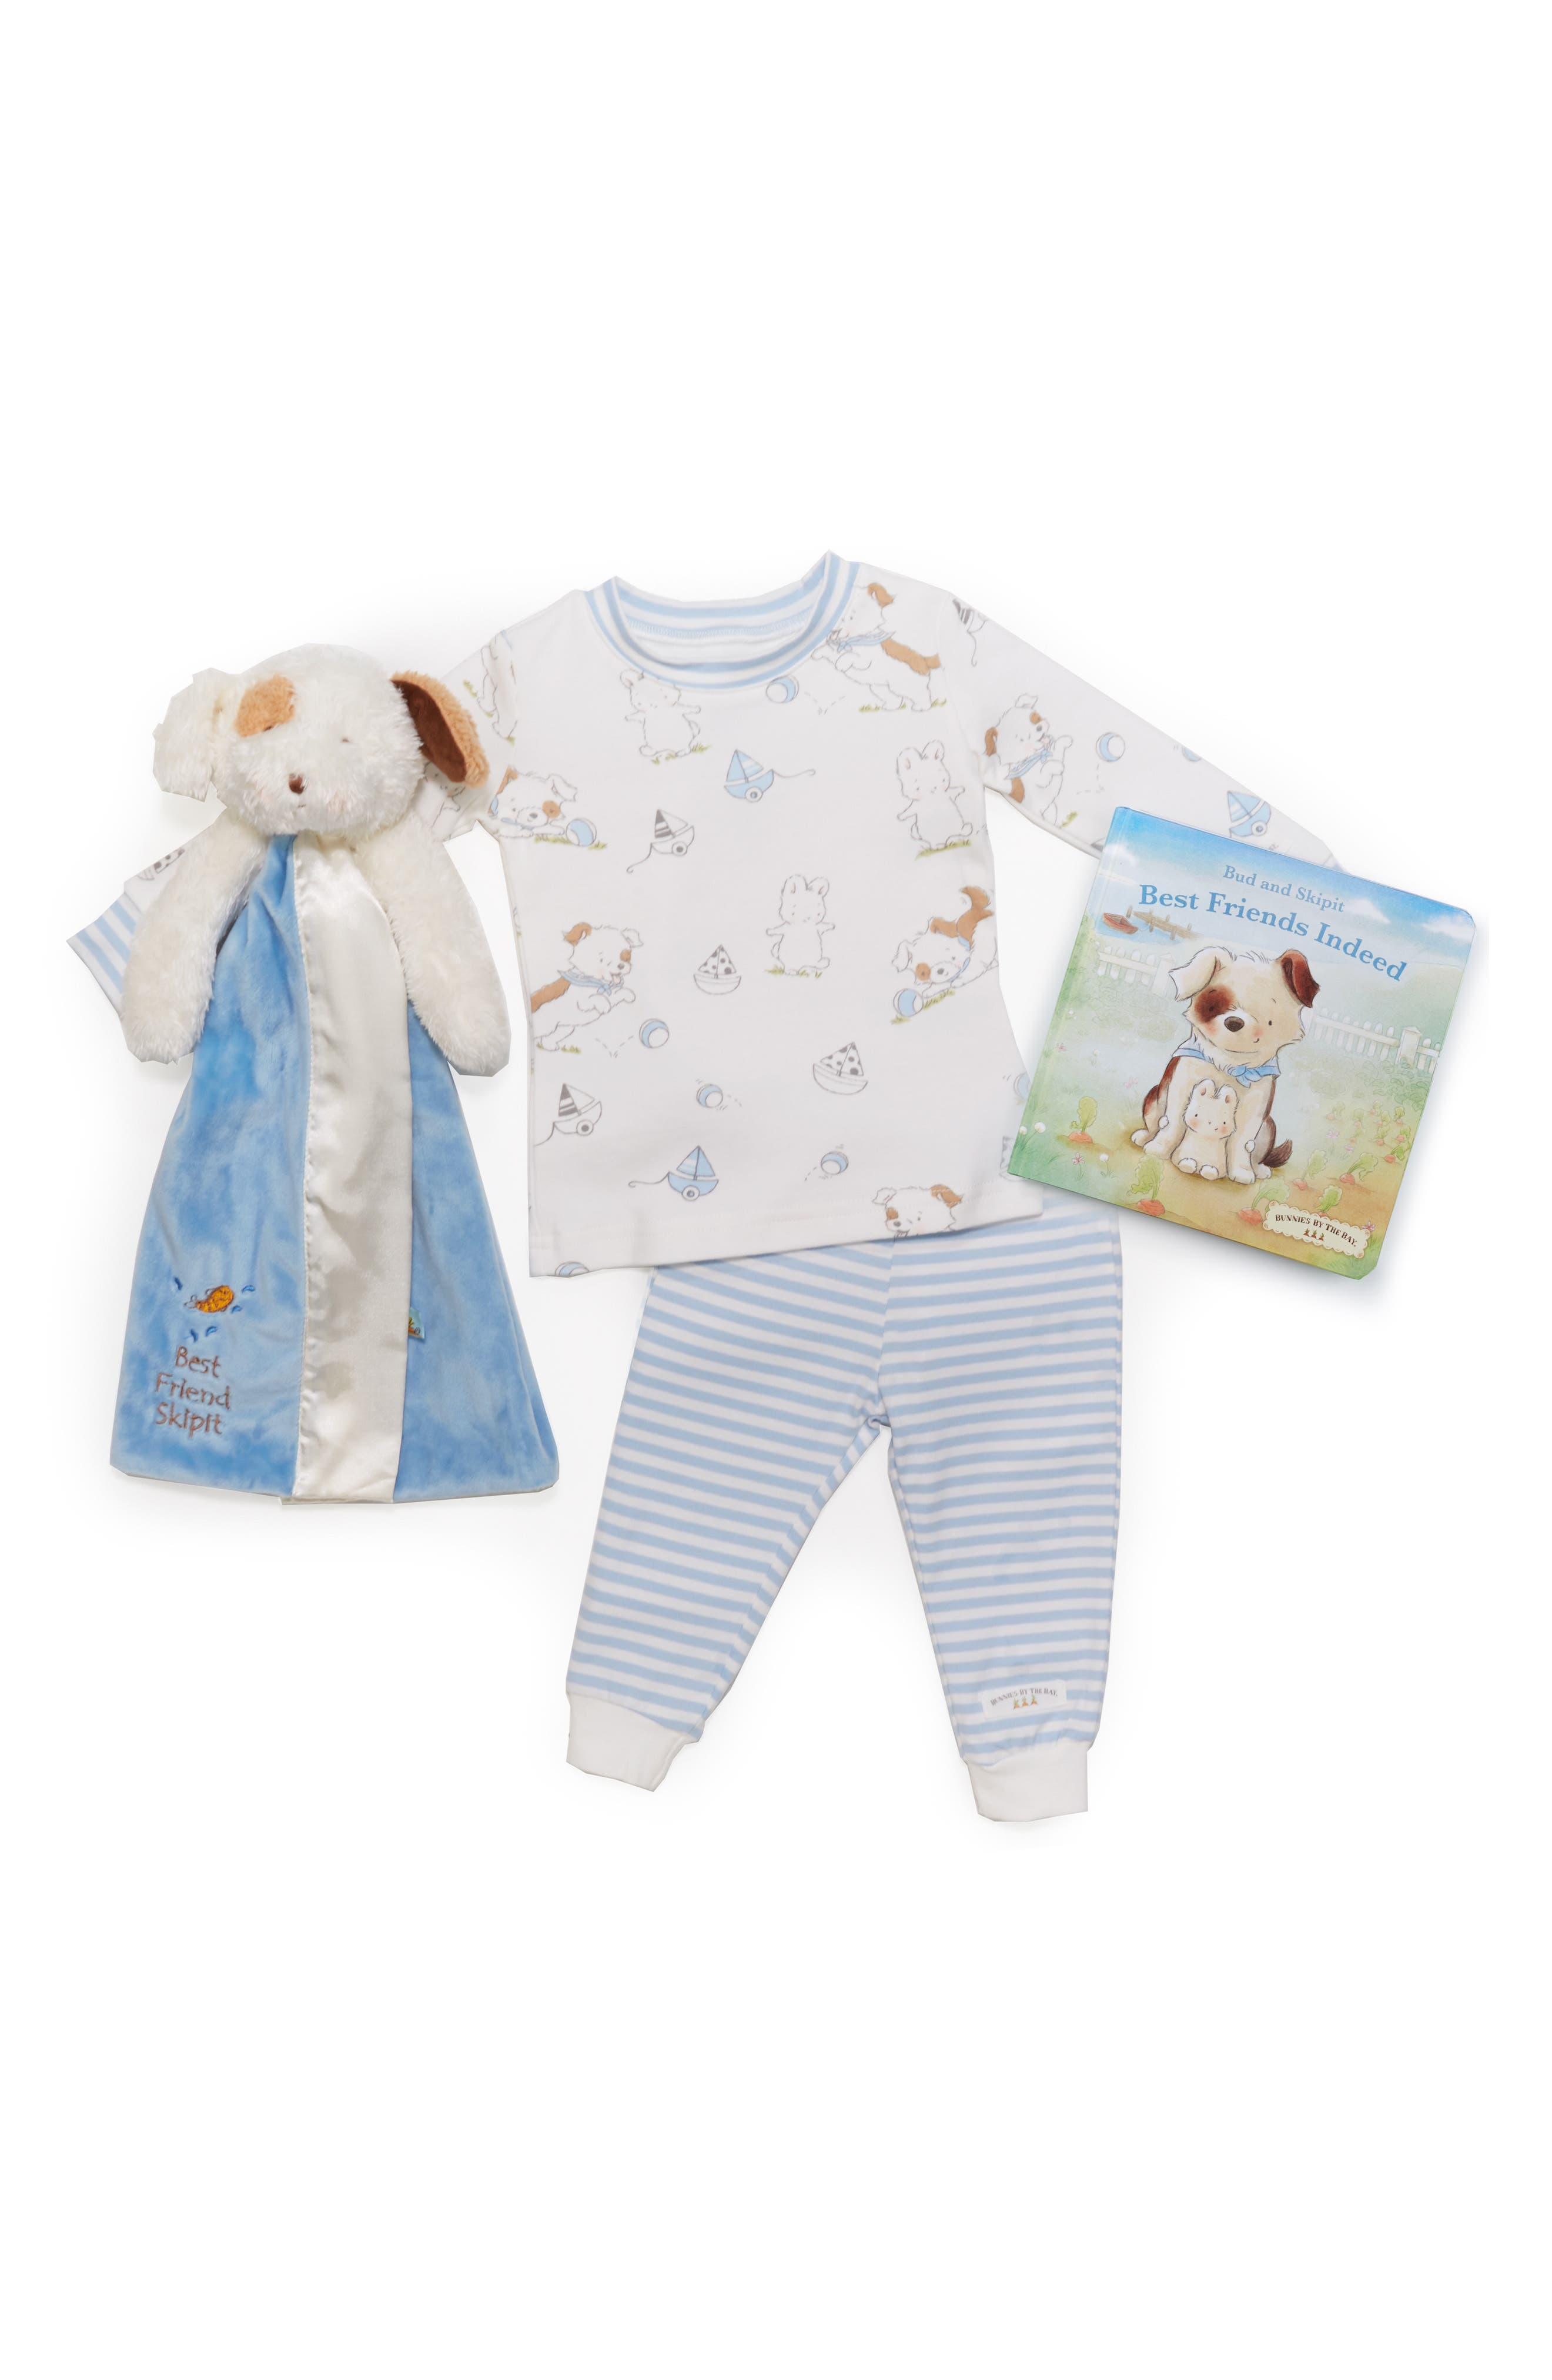 Best Friends Sleepy Time Fitted Two-Piece Pajamas, Animal Buddy Blanket & Board Book Set,                             Alternate thumbnail 2, color,                             BLUE